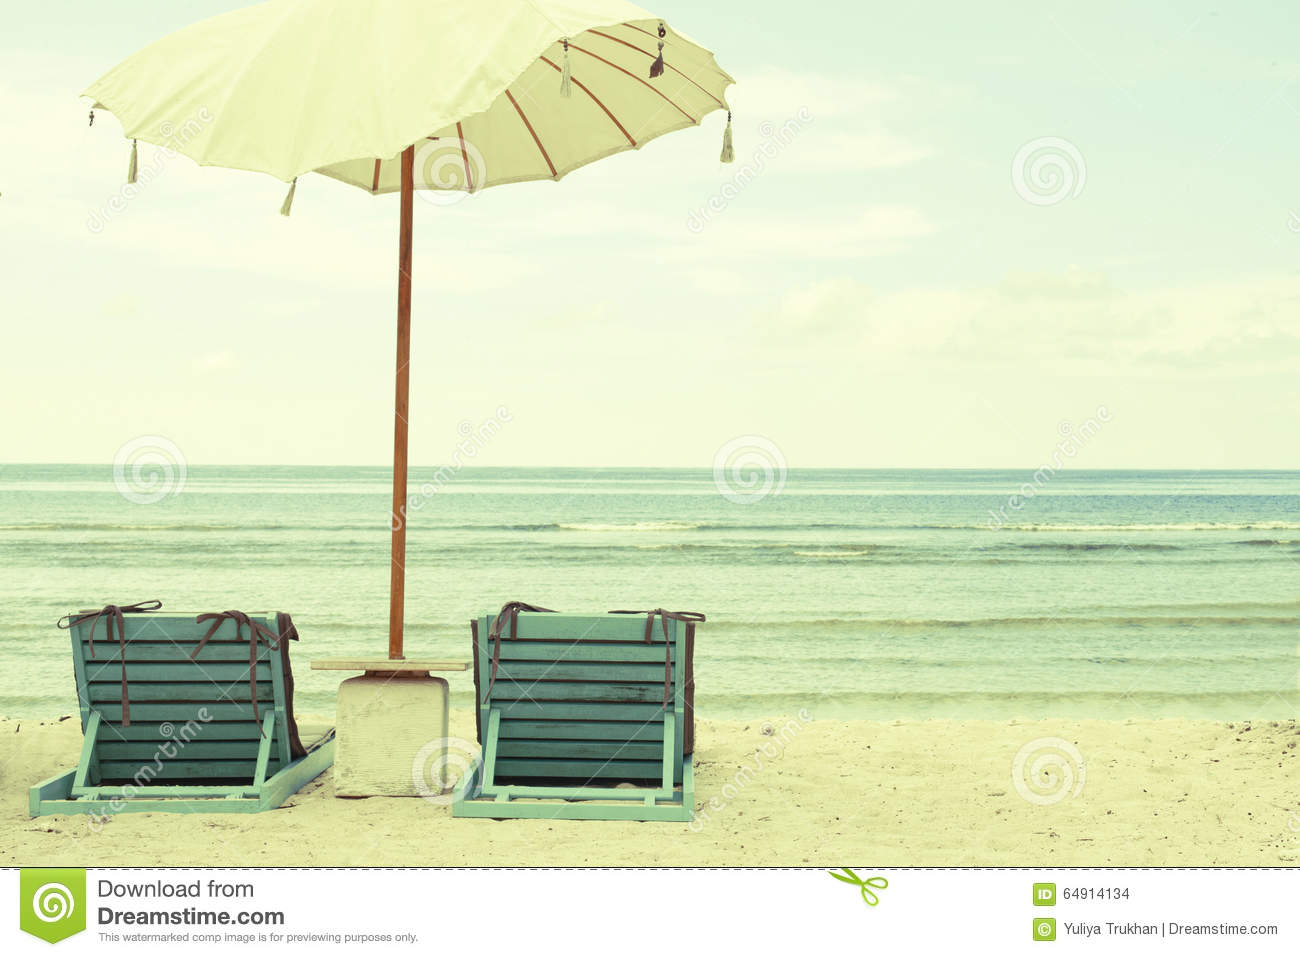 vintage beach chairs commercial sofas and umbrella postcard stock photo